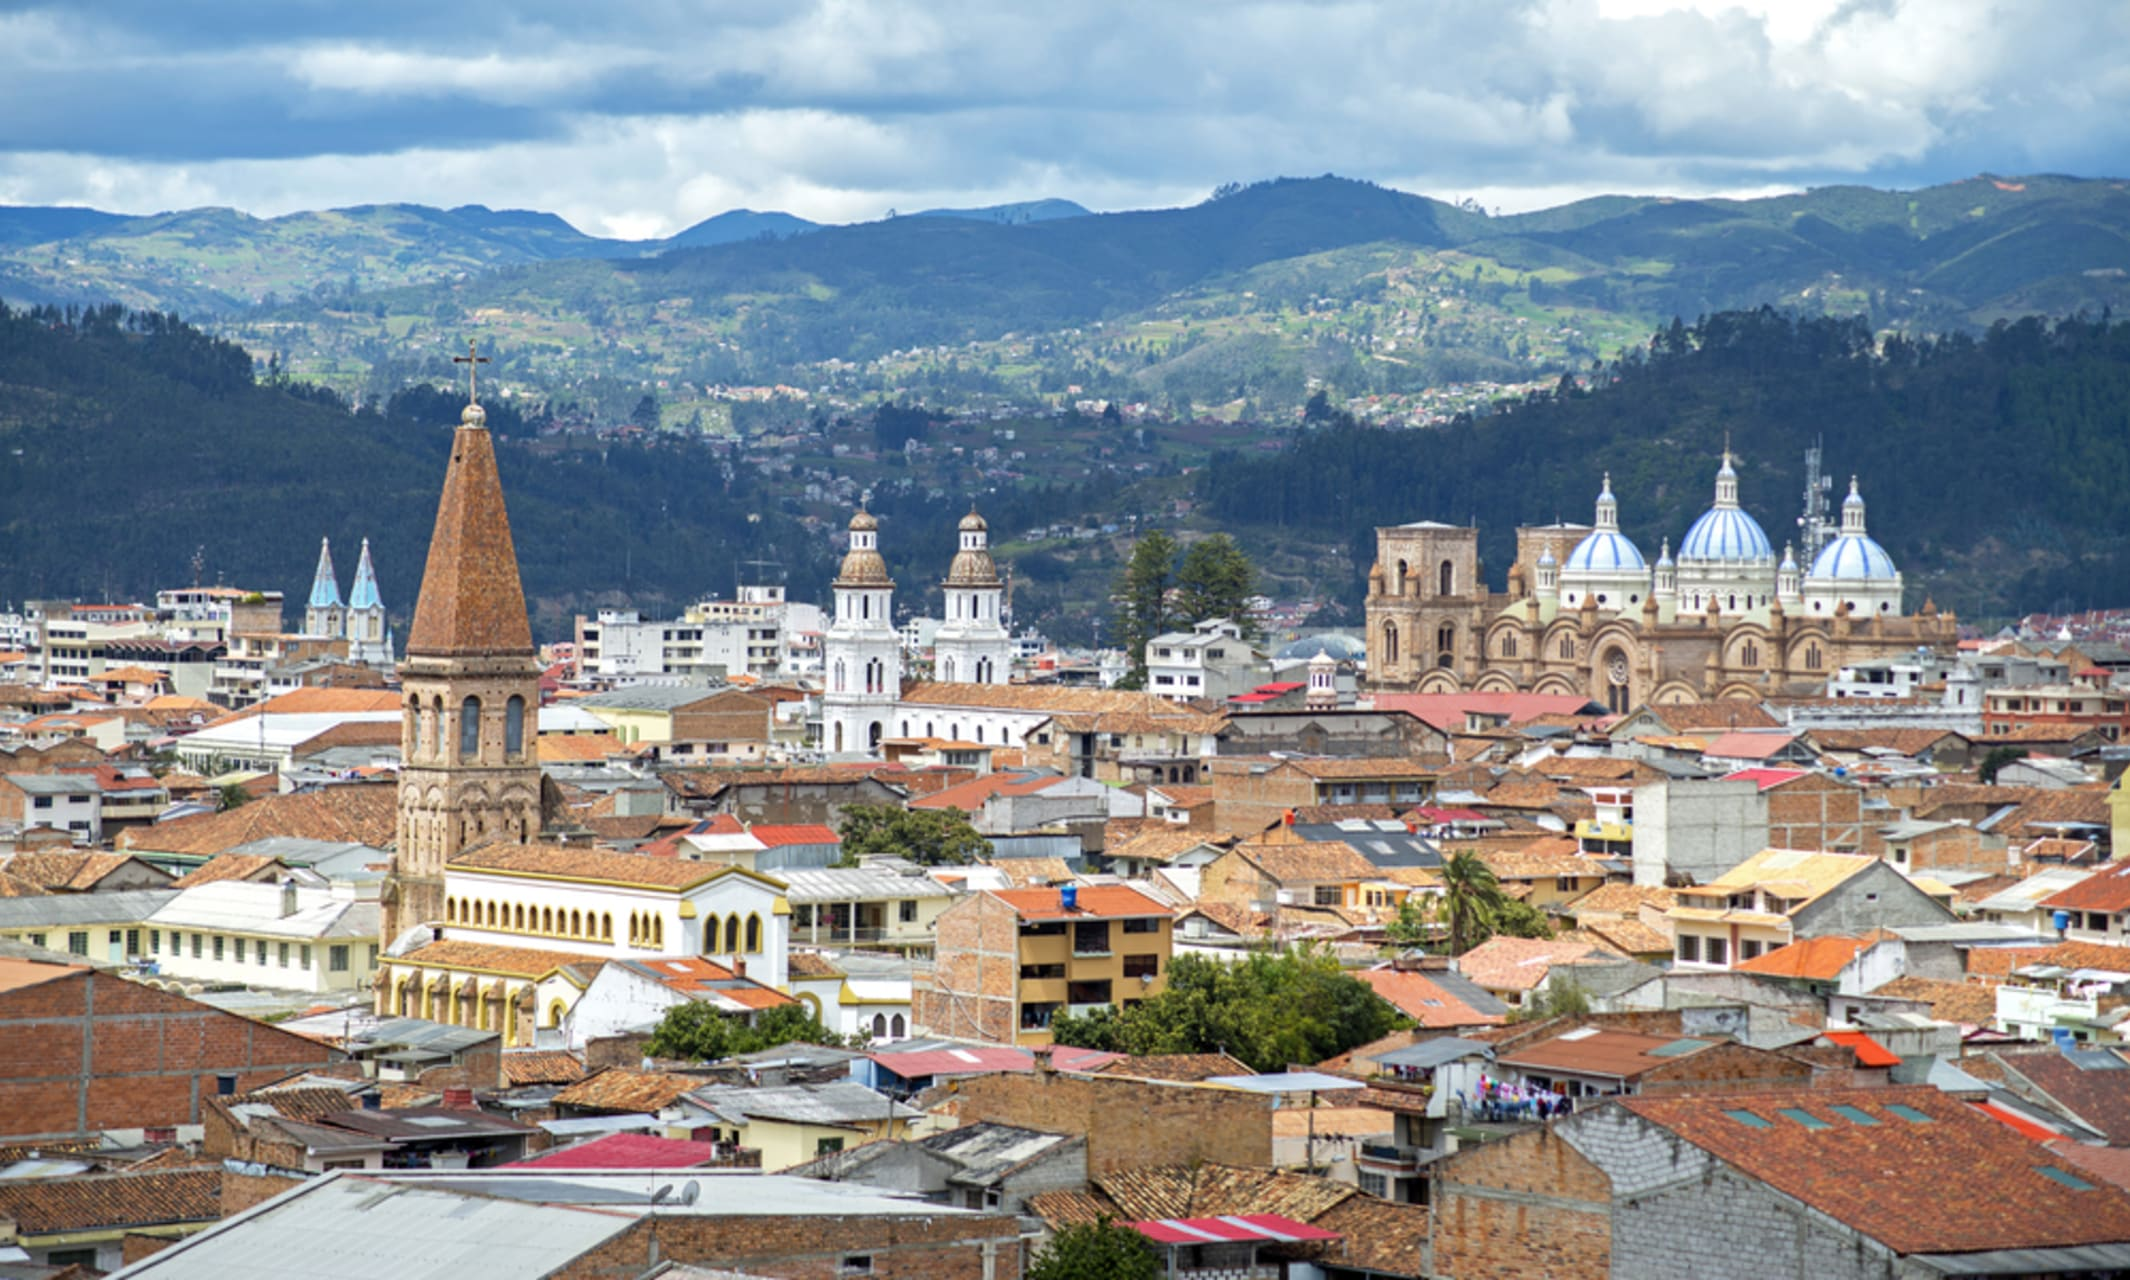 Quito - Cuenca Beautiful The city of Ecuador